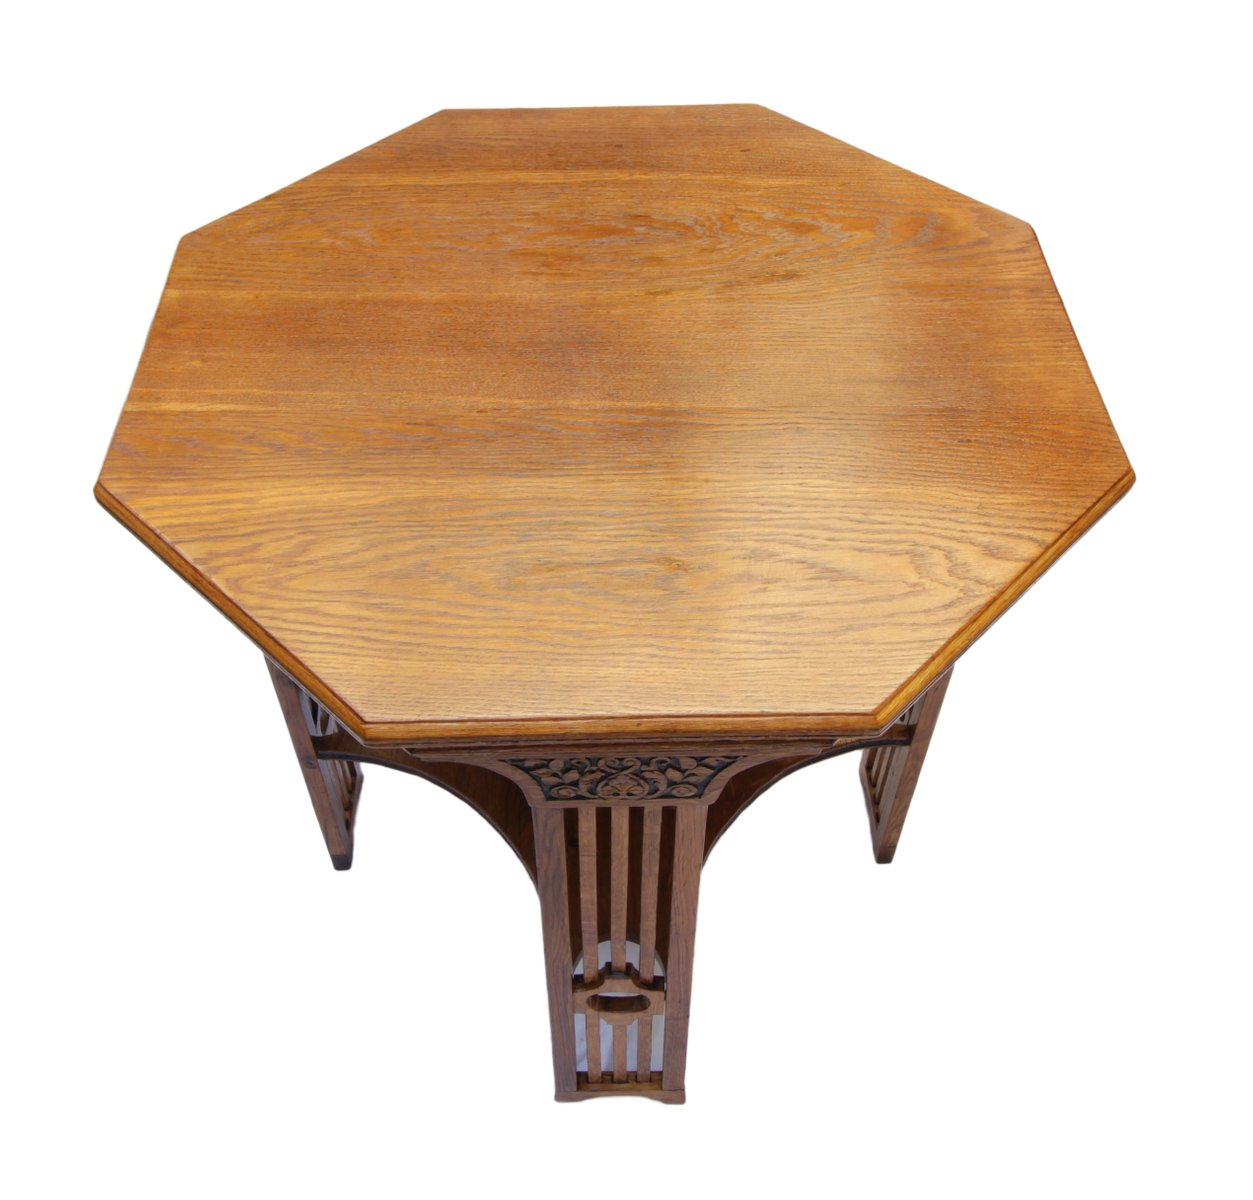 Art nouveau oak occasional table bei pamono kaufen for Table 6 2 ar 71 32